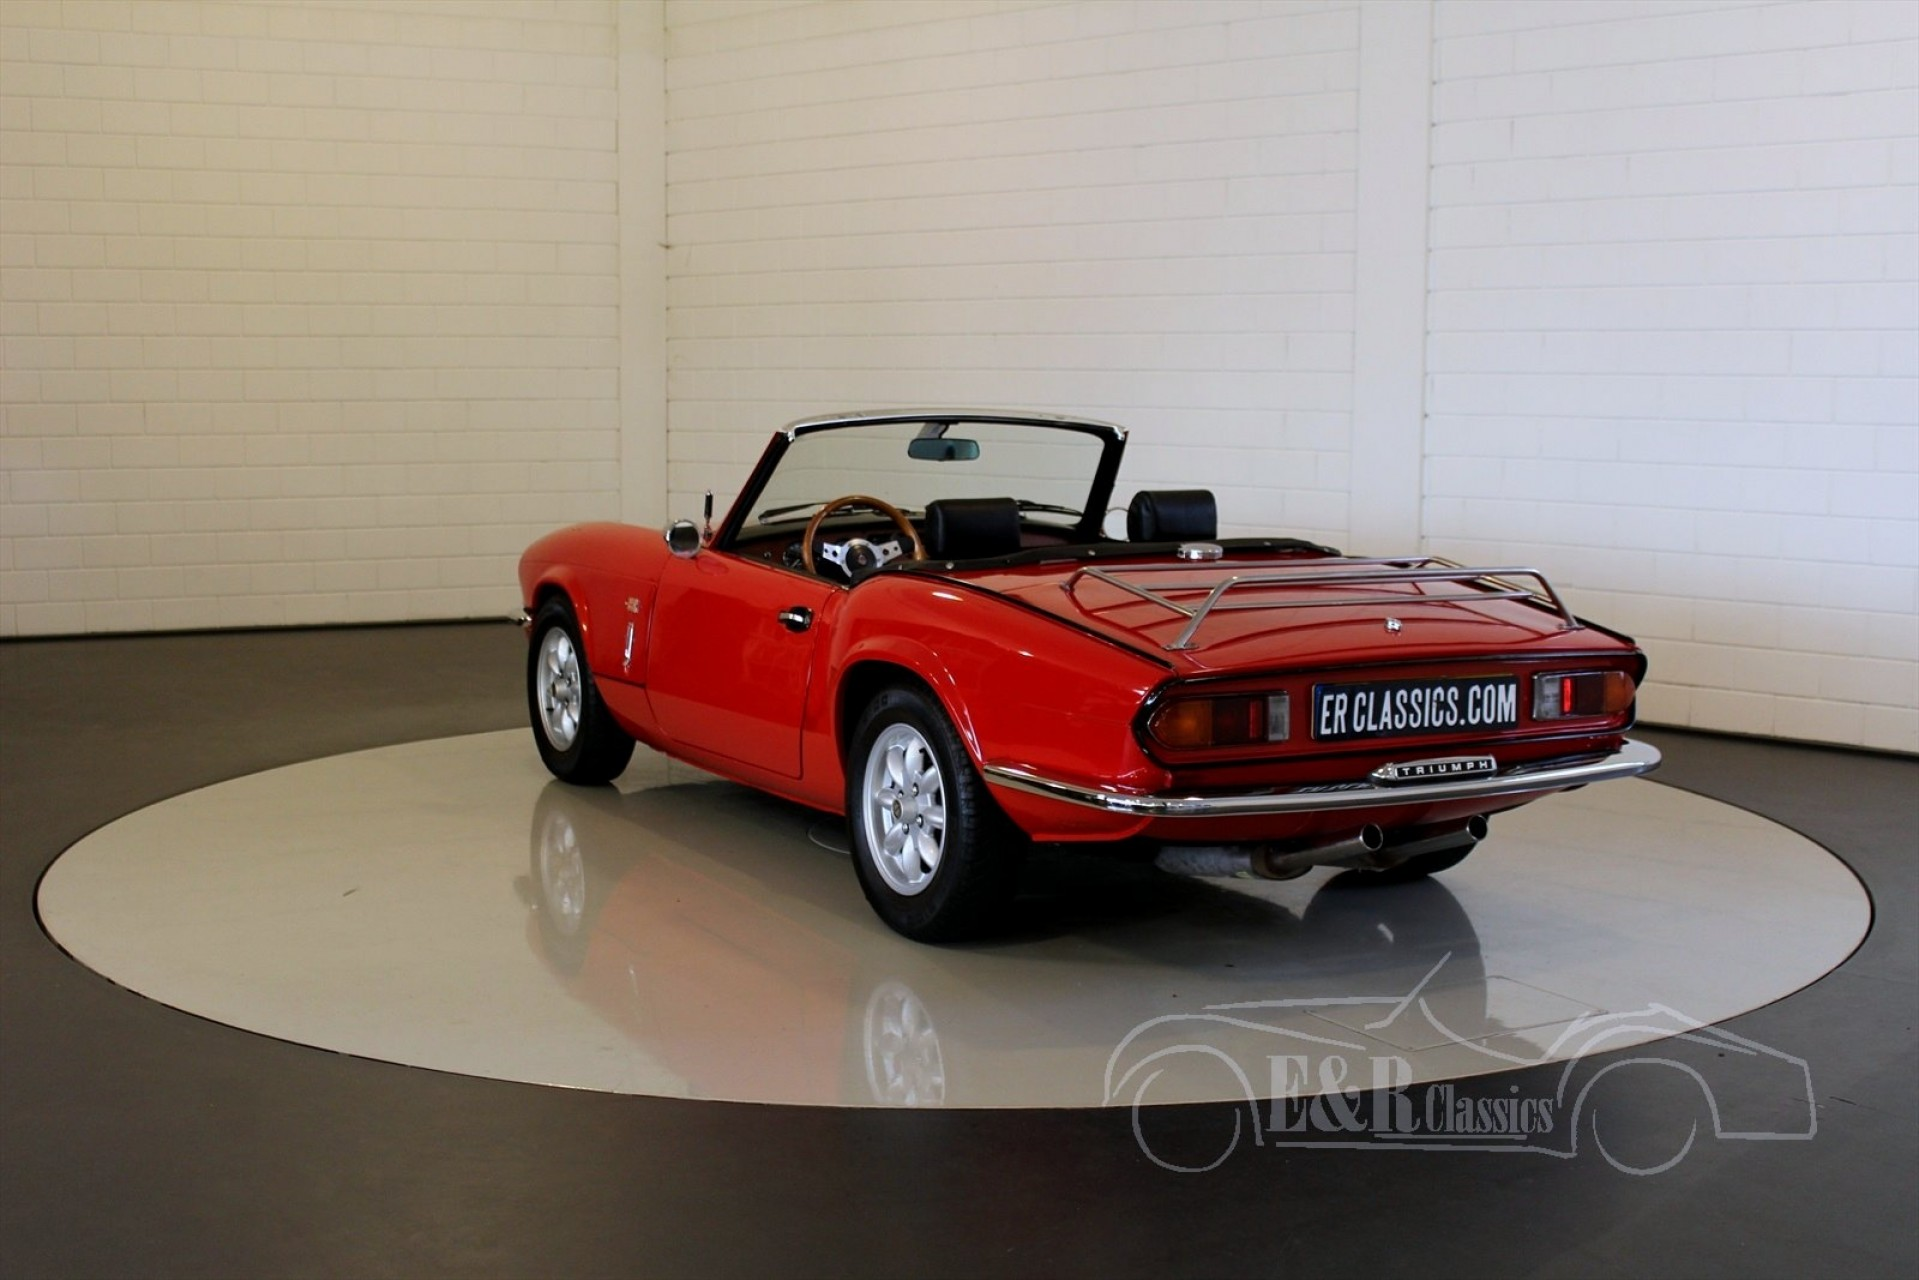 triumph spitfire 1500tc 1978 zum kauf bei erclassics. Black Bedroom Furniture Sets. Home Design Ideas